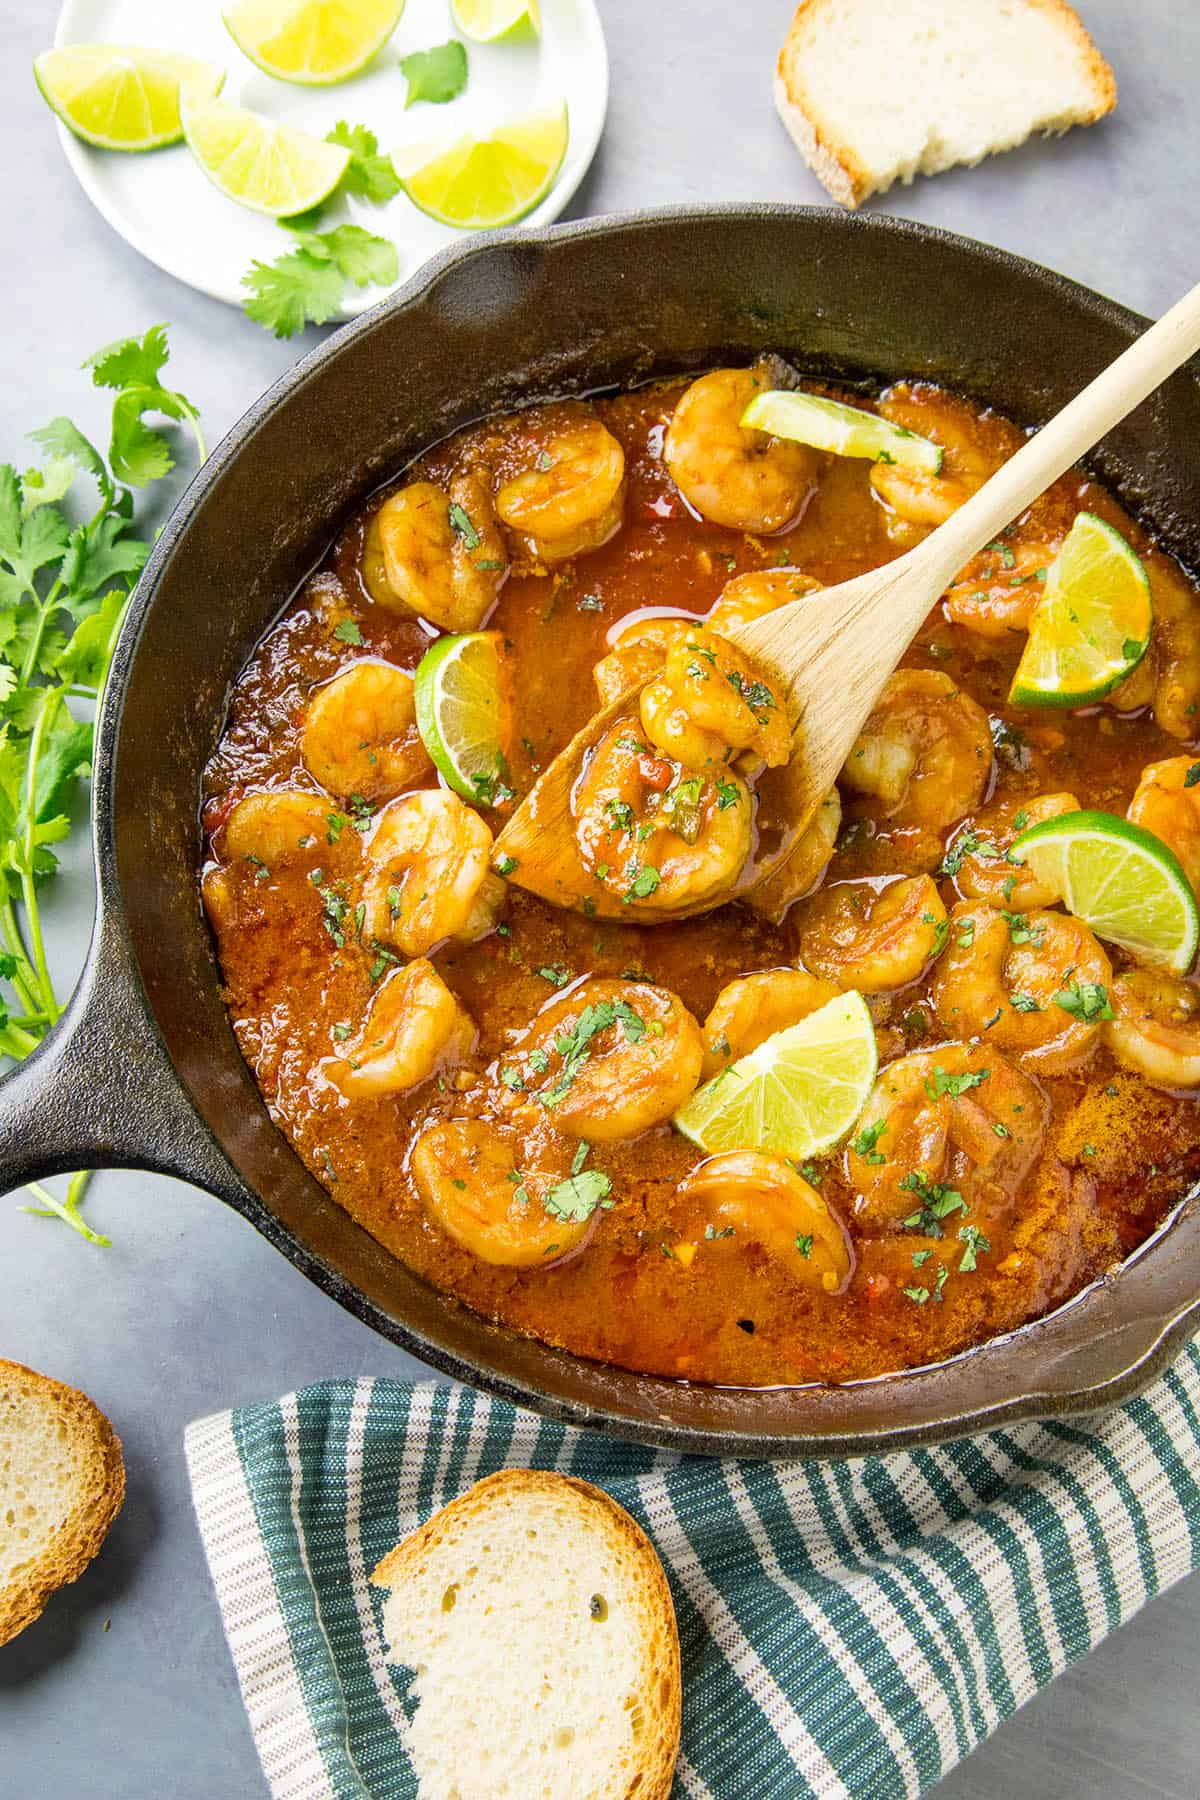 Shrimp in Fiery Chipotle-Tequila Sauce - In a pan, with a spoon for serving